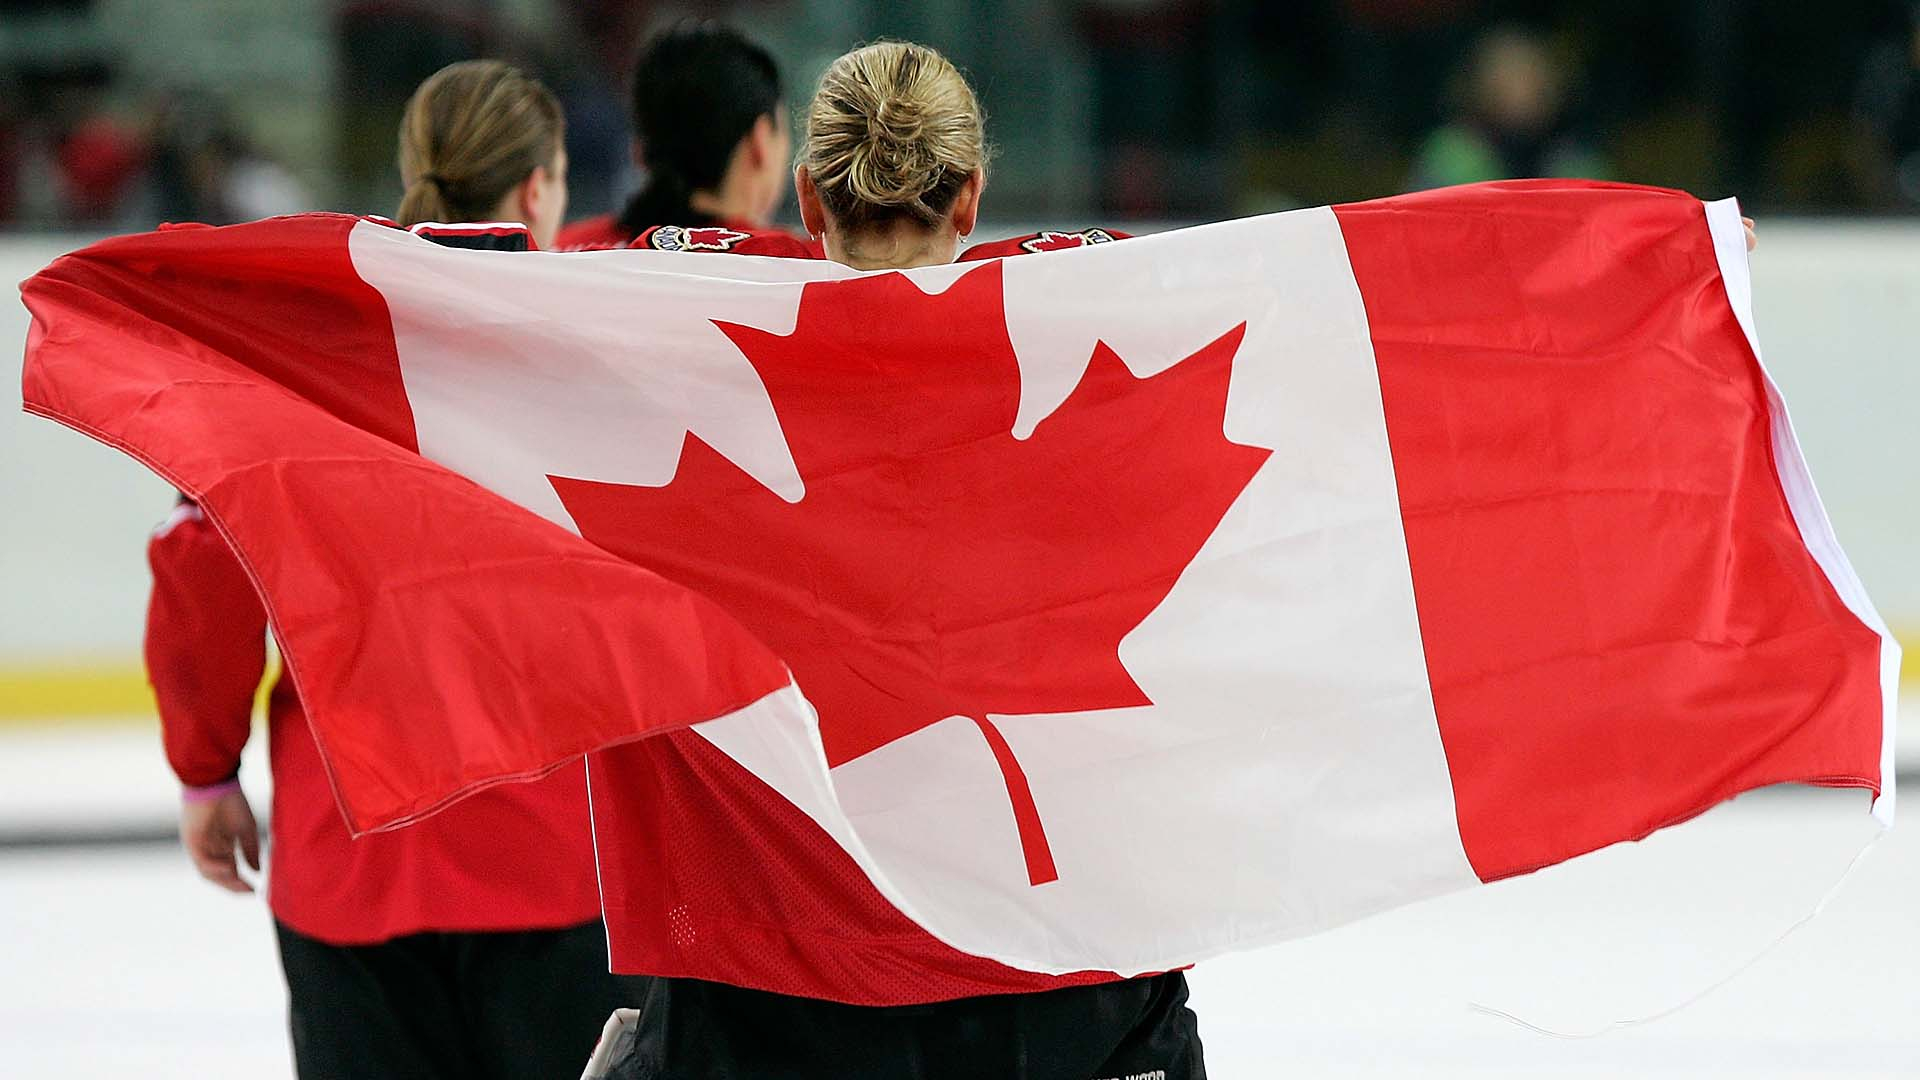 Canada Changes Their Anthem To Be Gender Neutral